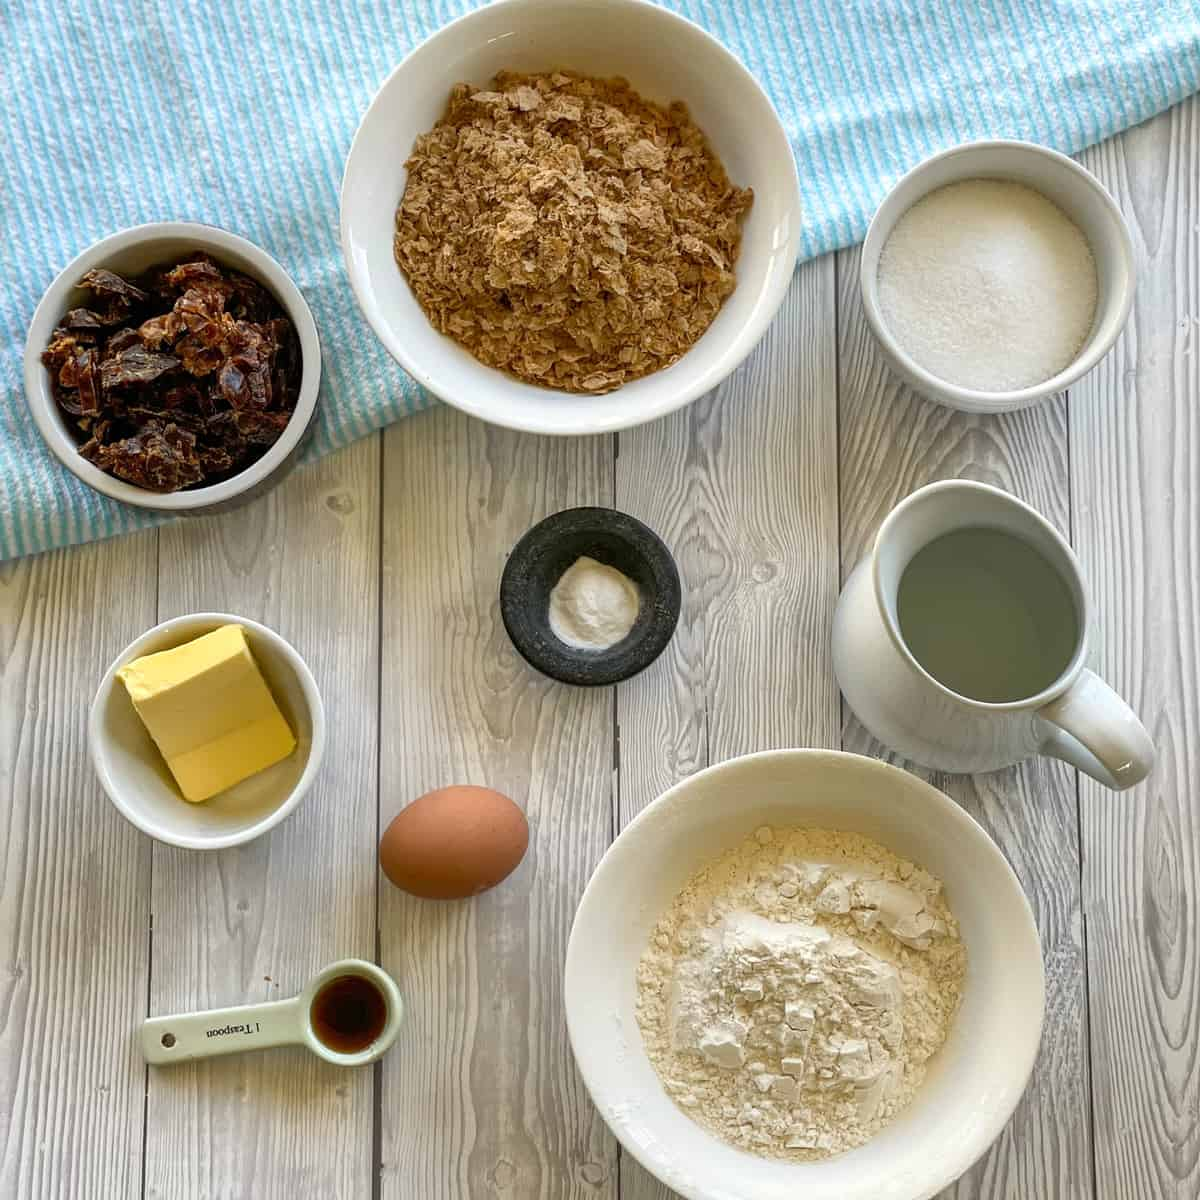 Showing ingredients used to make weetbix and date loaf, see recipe card